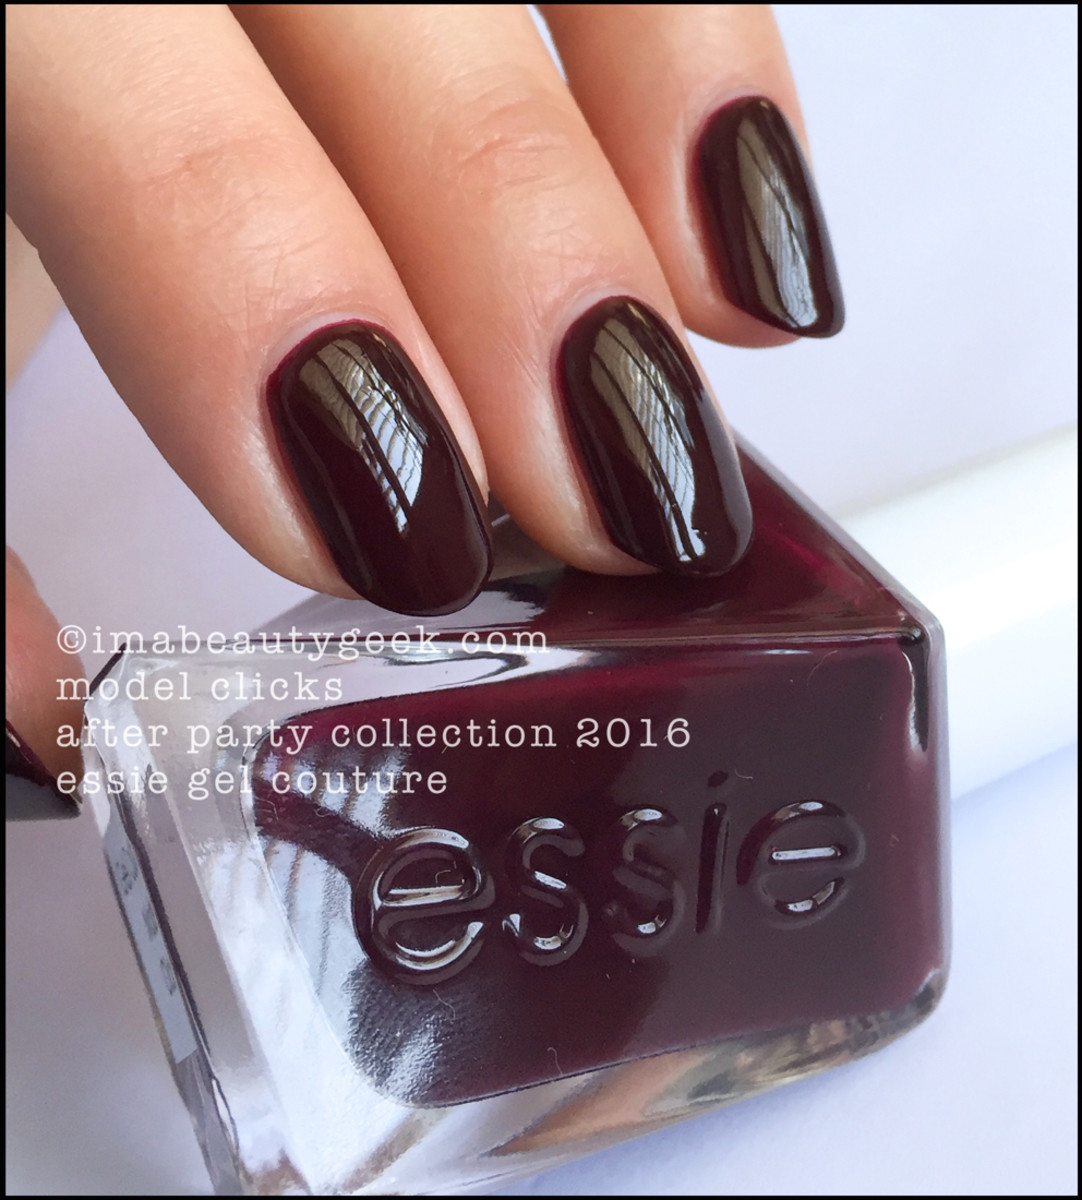 Essie Model Clicks_Essie Gel Couture Review Swatches 2016